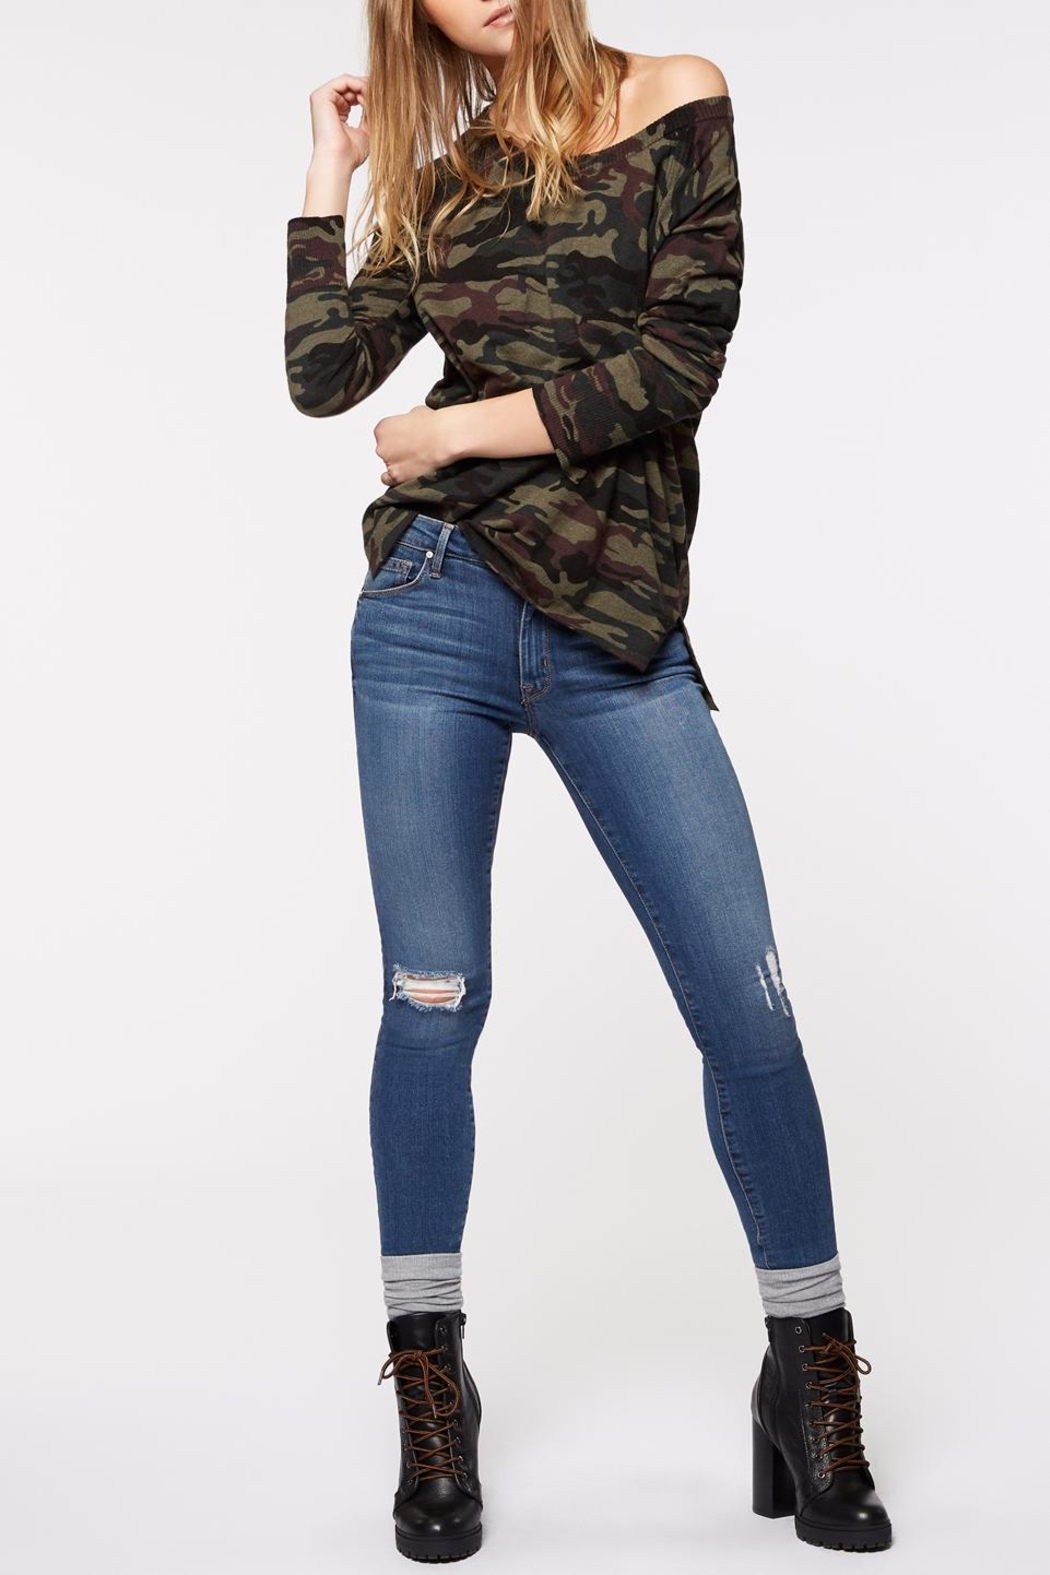 Sanctuary Renee Camo Crew Top - Front Cropped Image